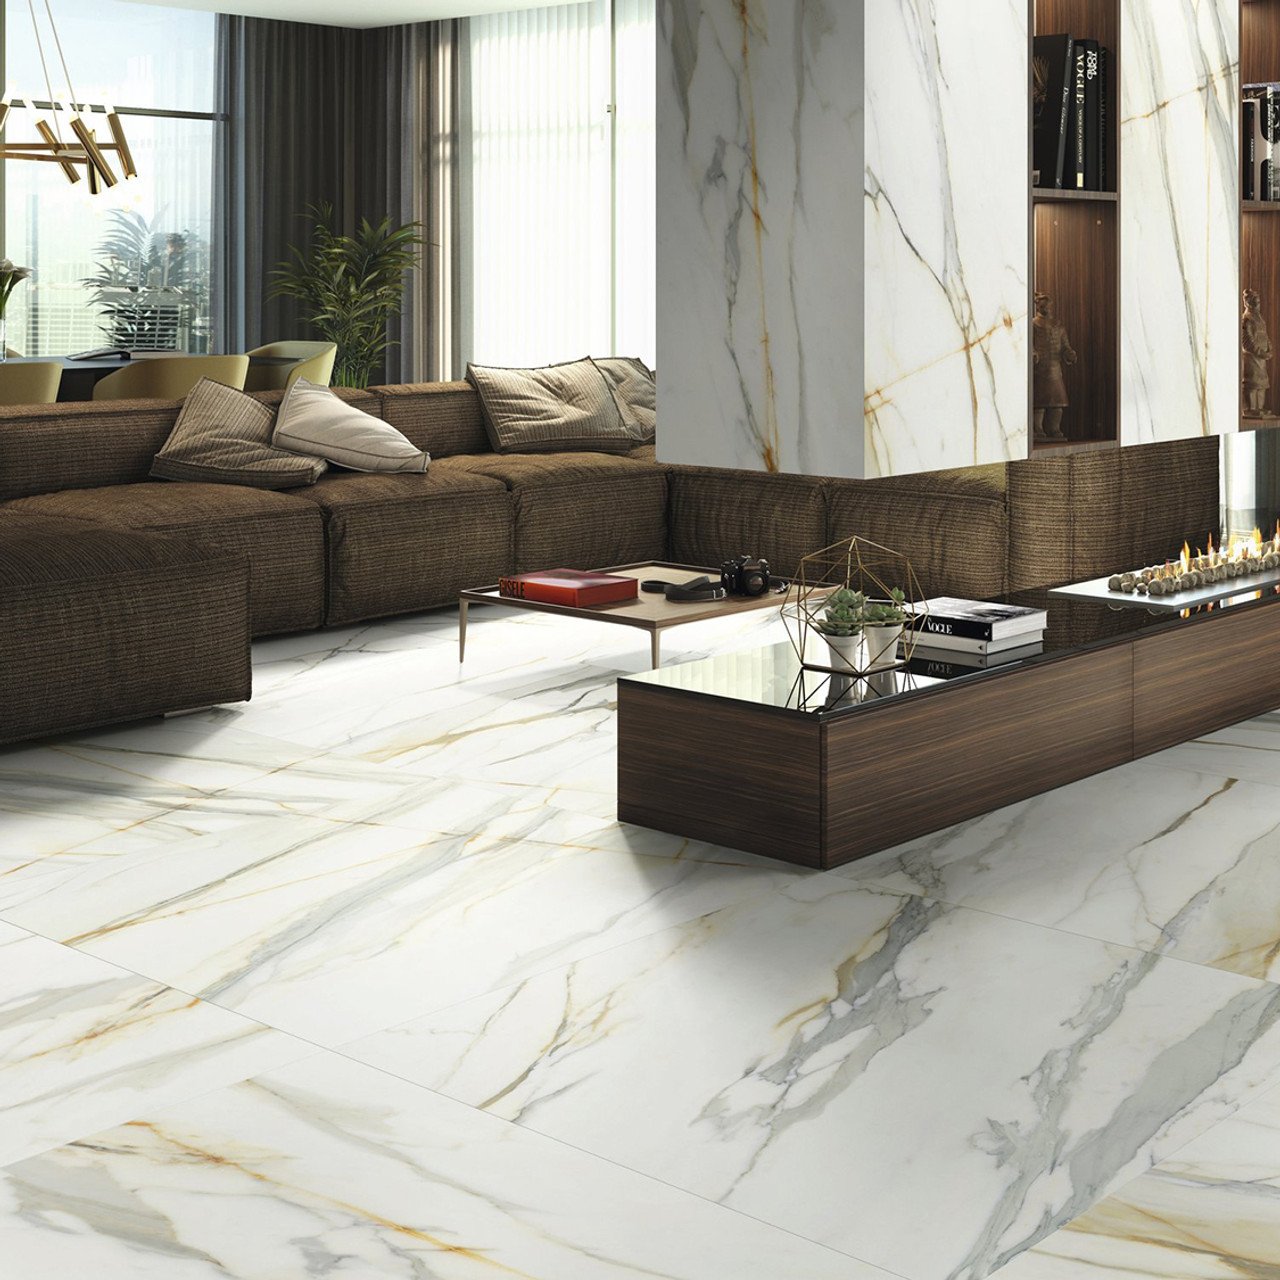 Calacatta Borghini Porcelain Wall Floor Tiles In Liverpool